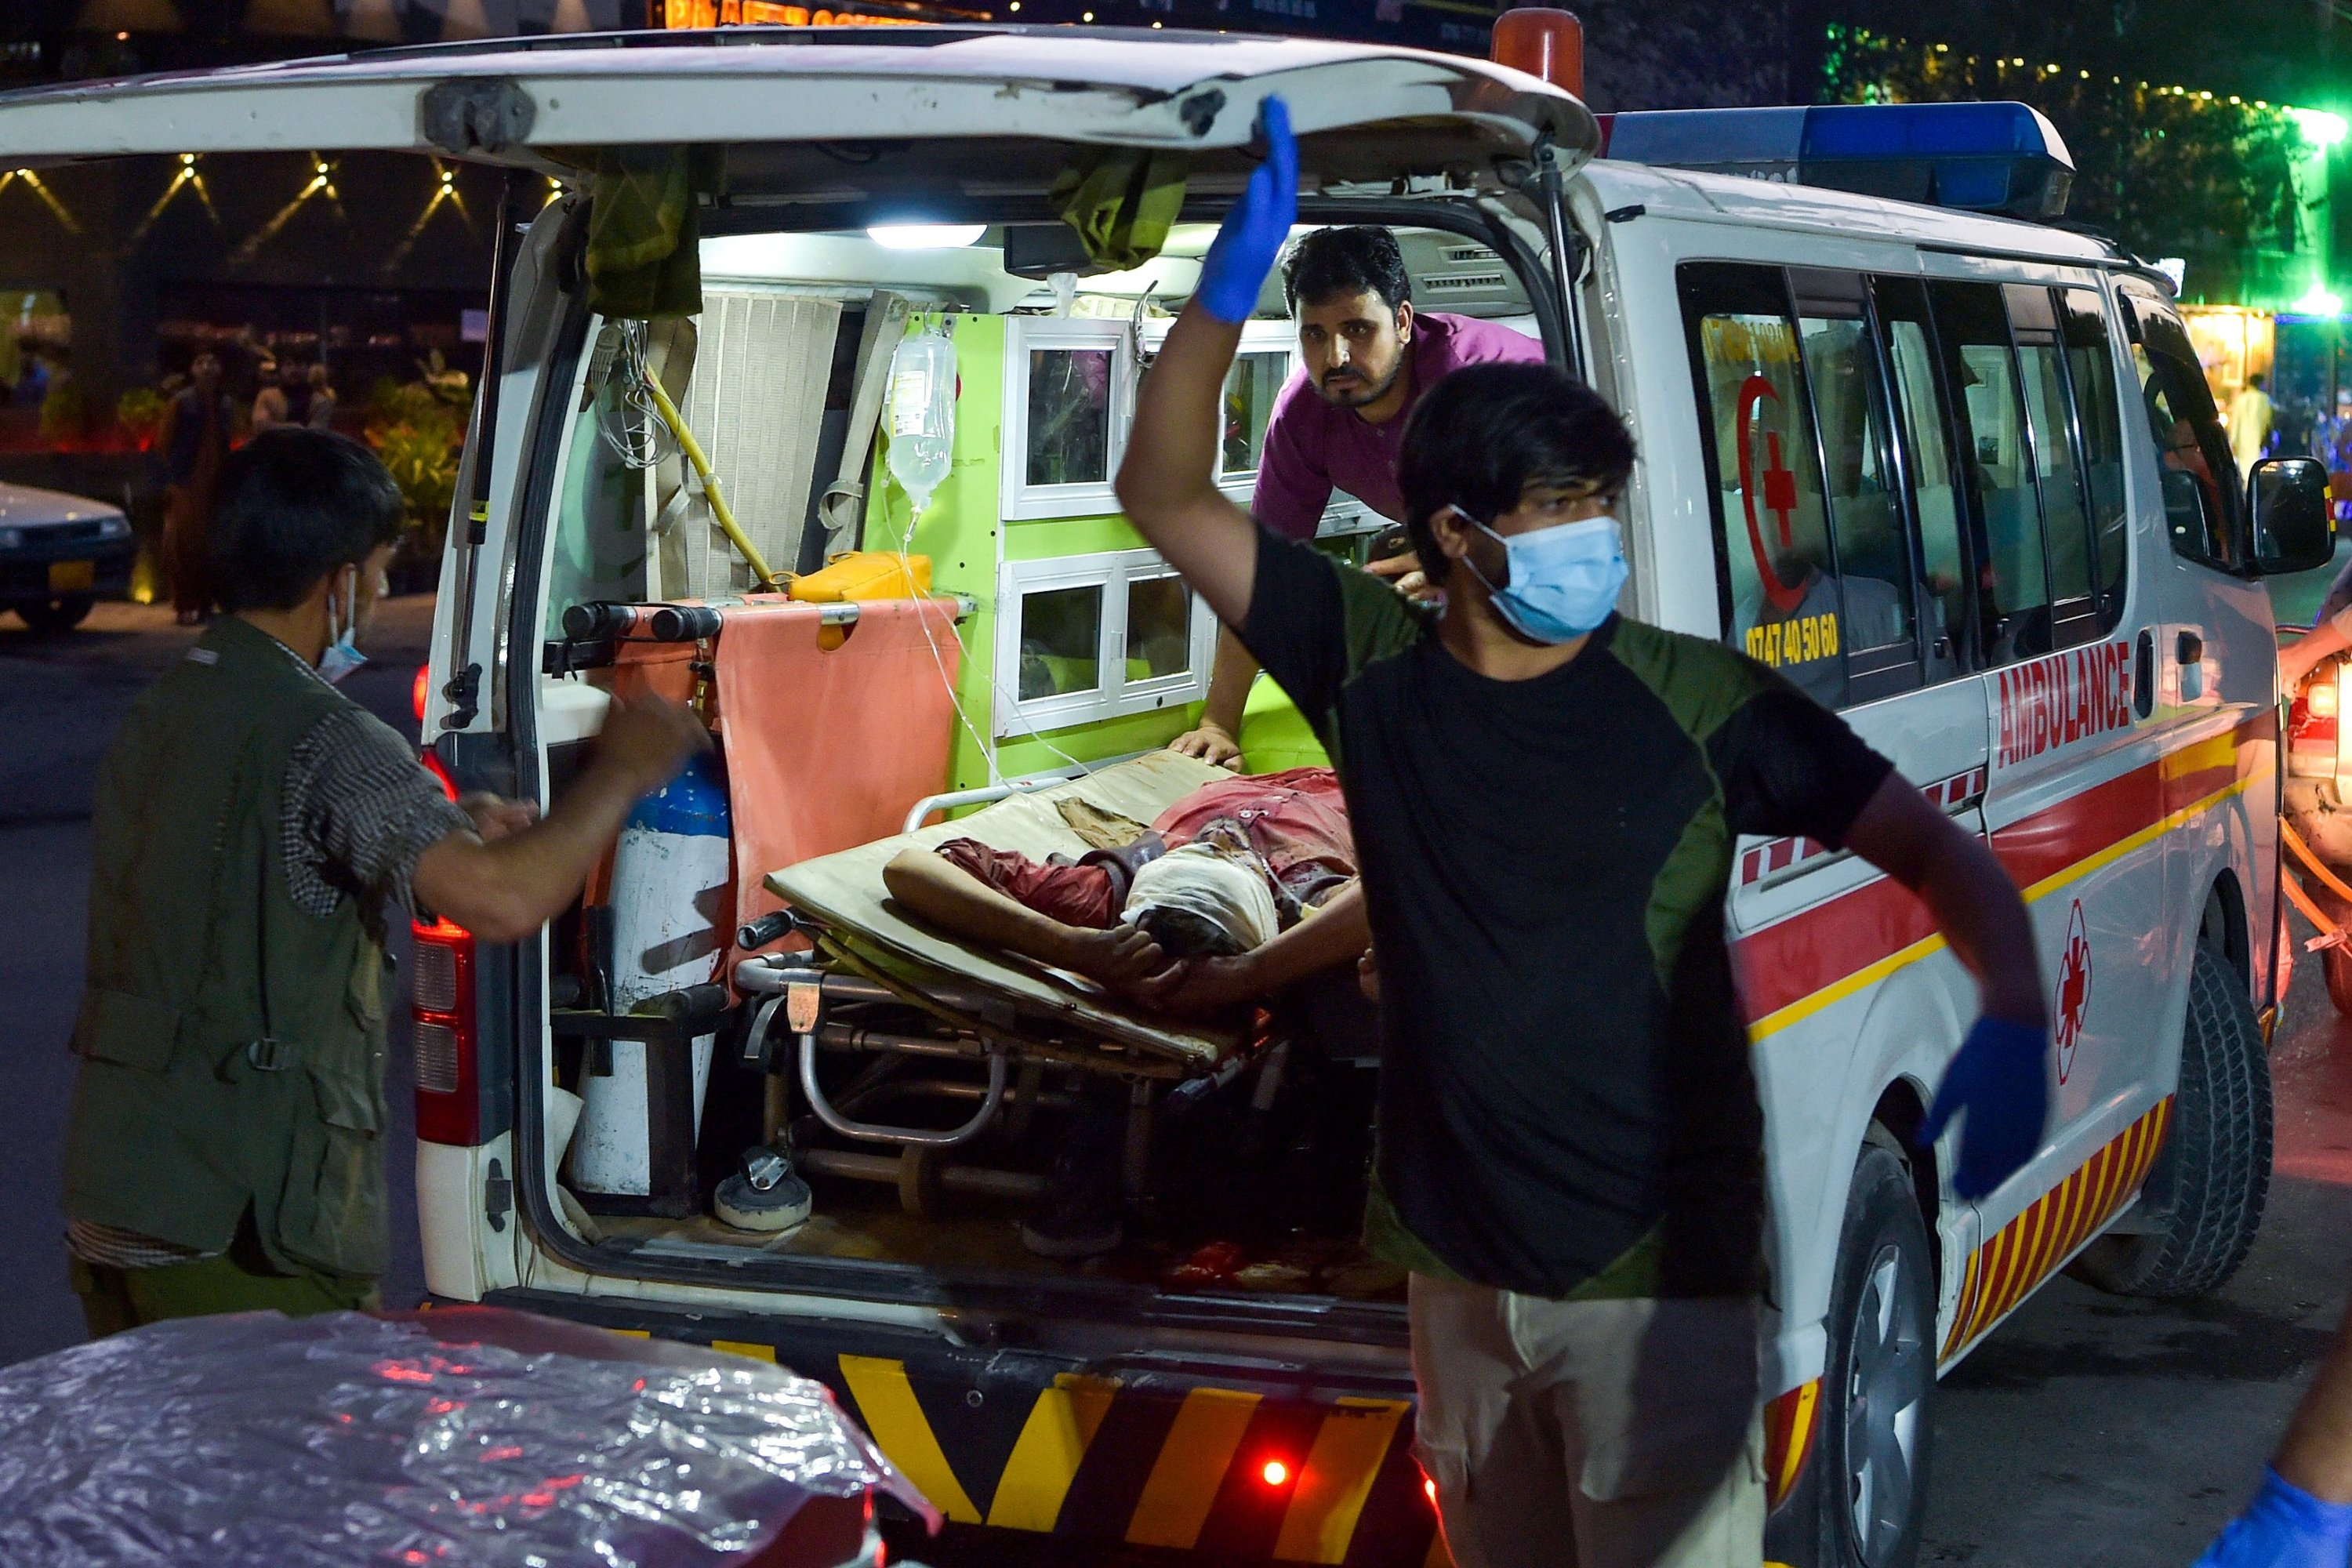 Medical staff bring an injured man to a hospital in an ambulance after two powerful explosions, which killed at least six people, outside the airport in Kabul, Afghanistan, Aug. 26, 2021. (Photo by Wakil KOHSAR via AFP)